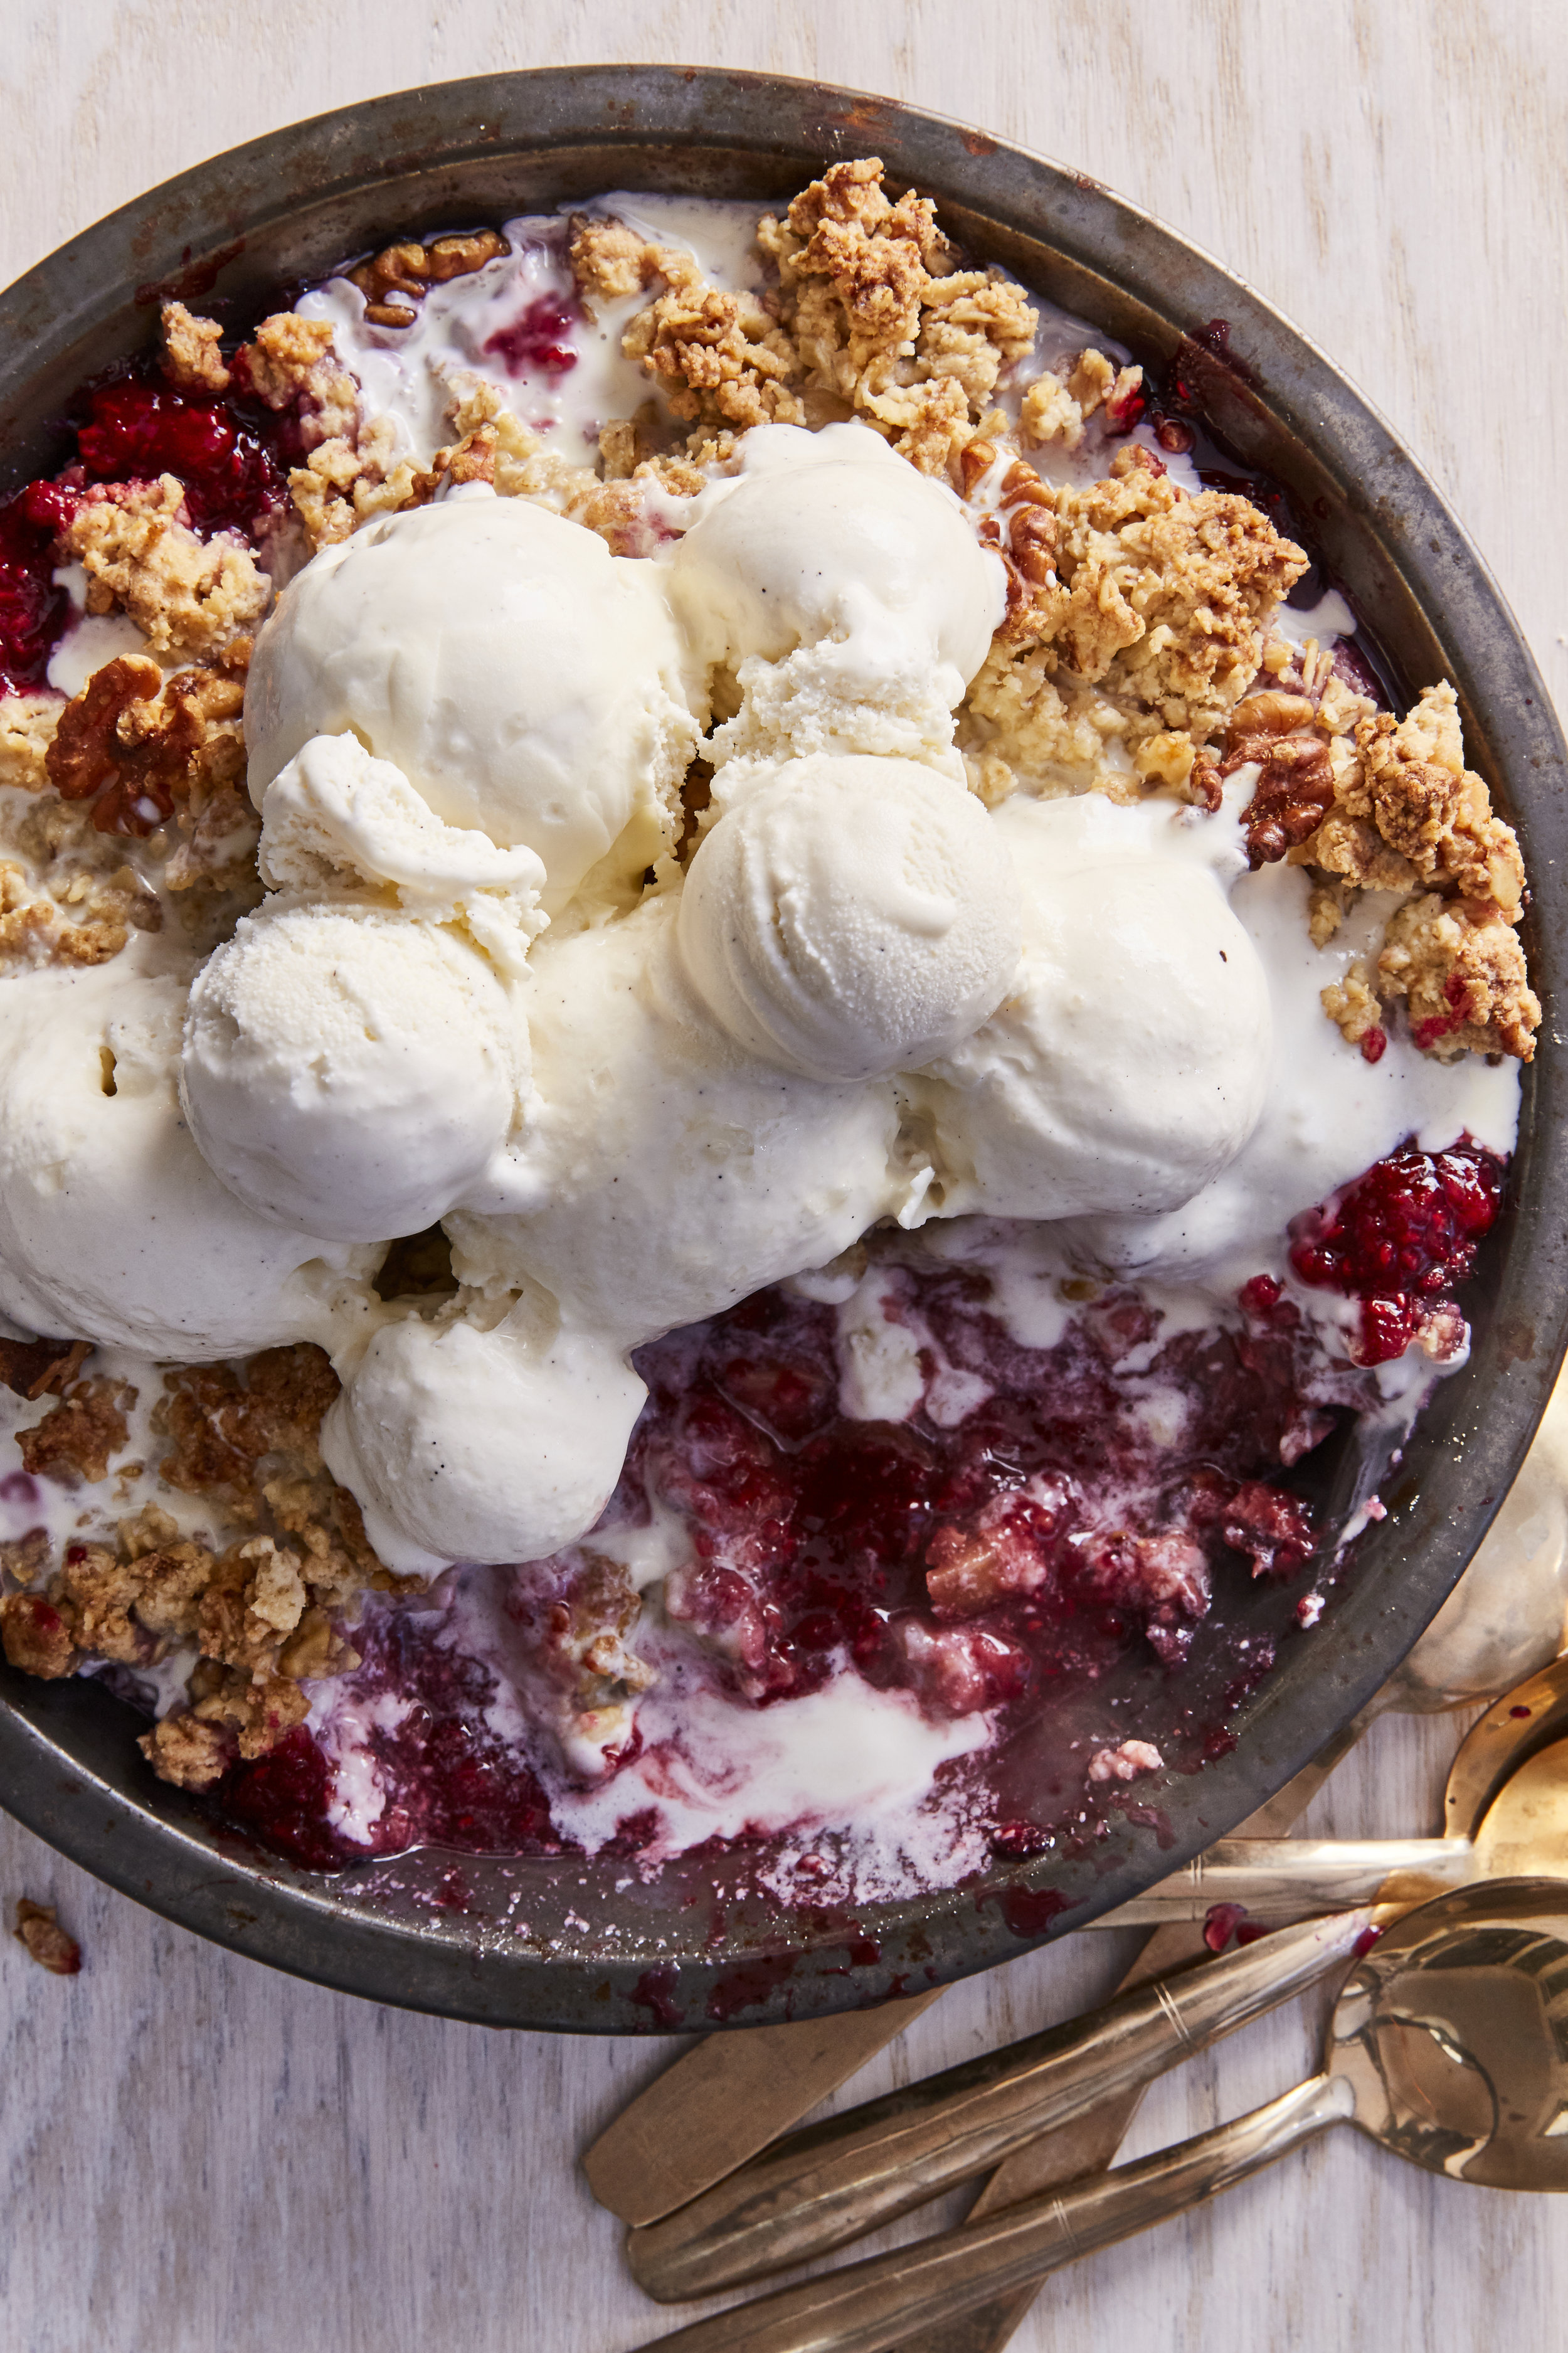 Raspberry Rhubarb Crumble from EVERY DAY IS SATURDAY    #everydayissaturdaycookbook  #rhubarb  #rhubarbpie #baking #easyrecipes #easybakingrecipe